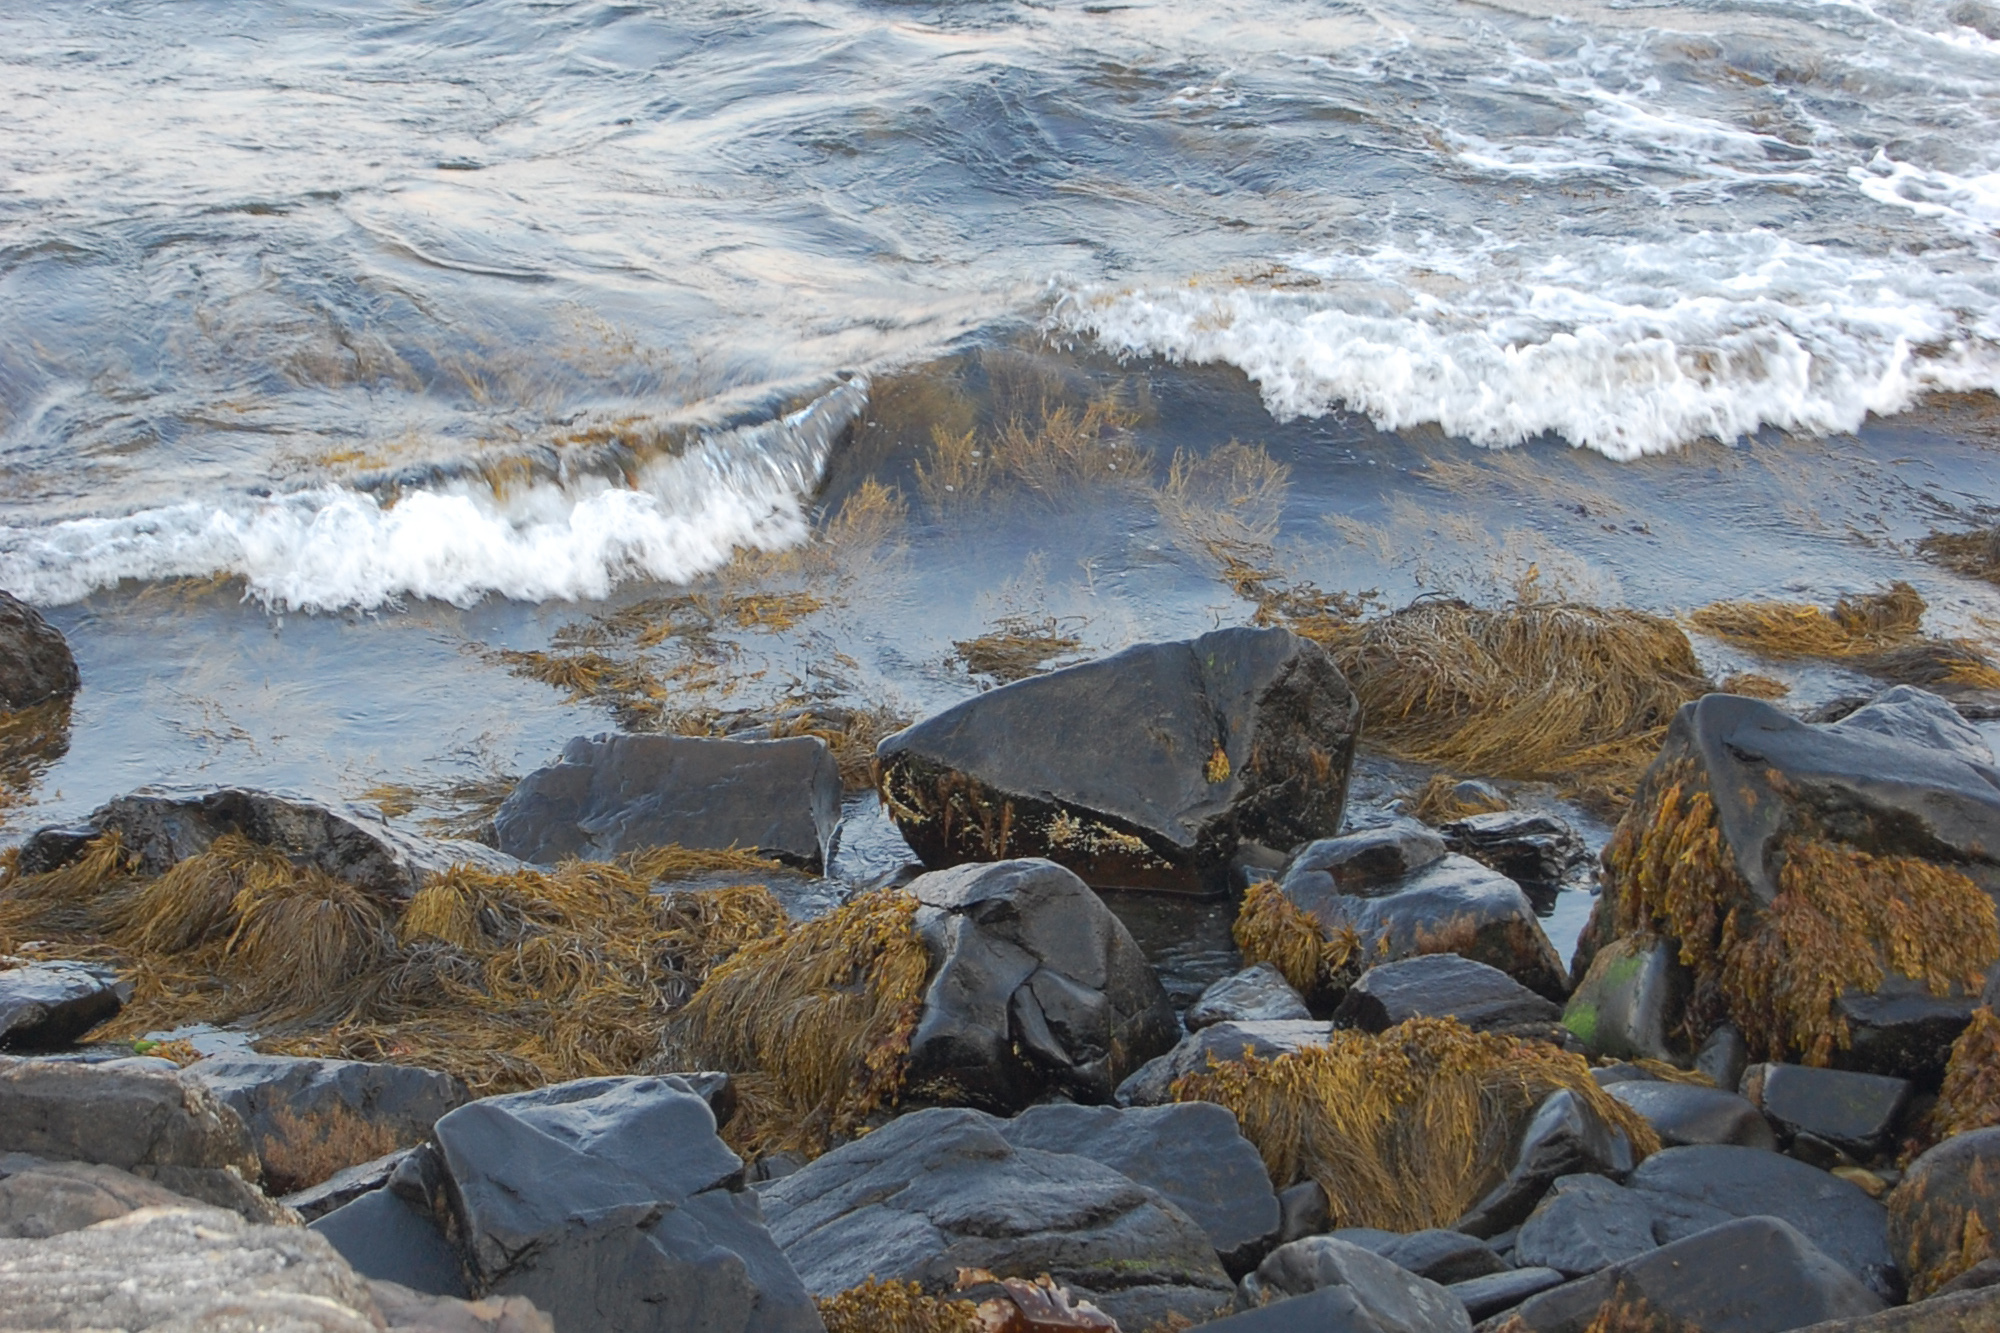 A rocky shoreline with seaweed and small shallow waves breaking over.